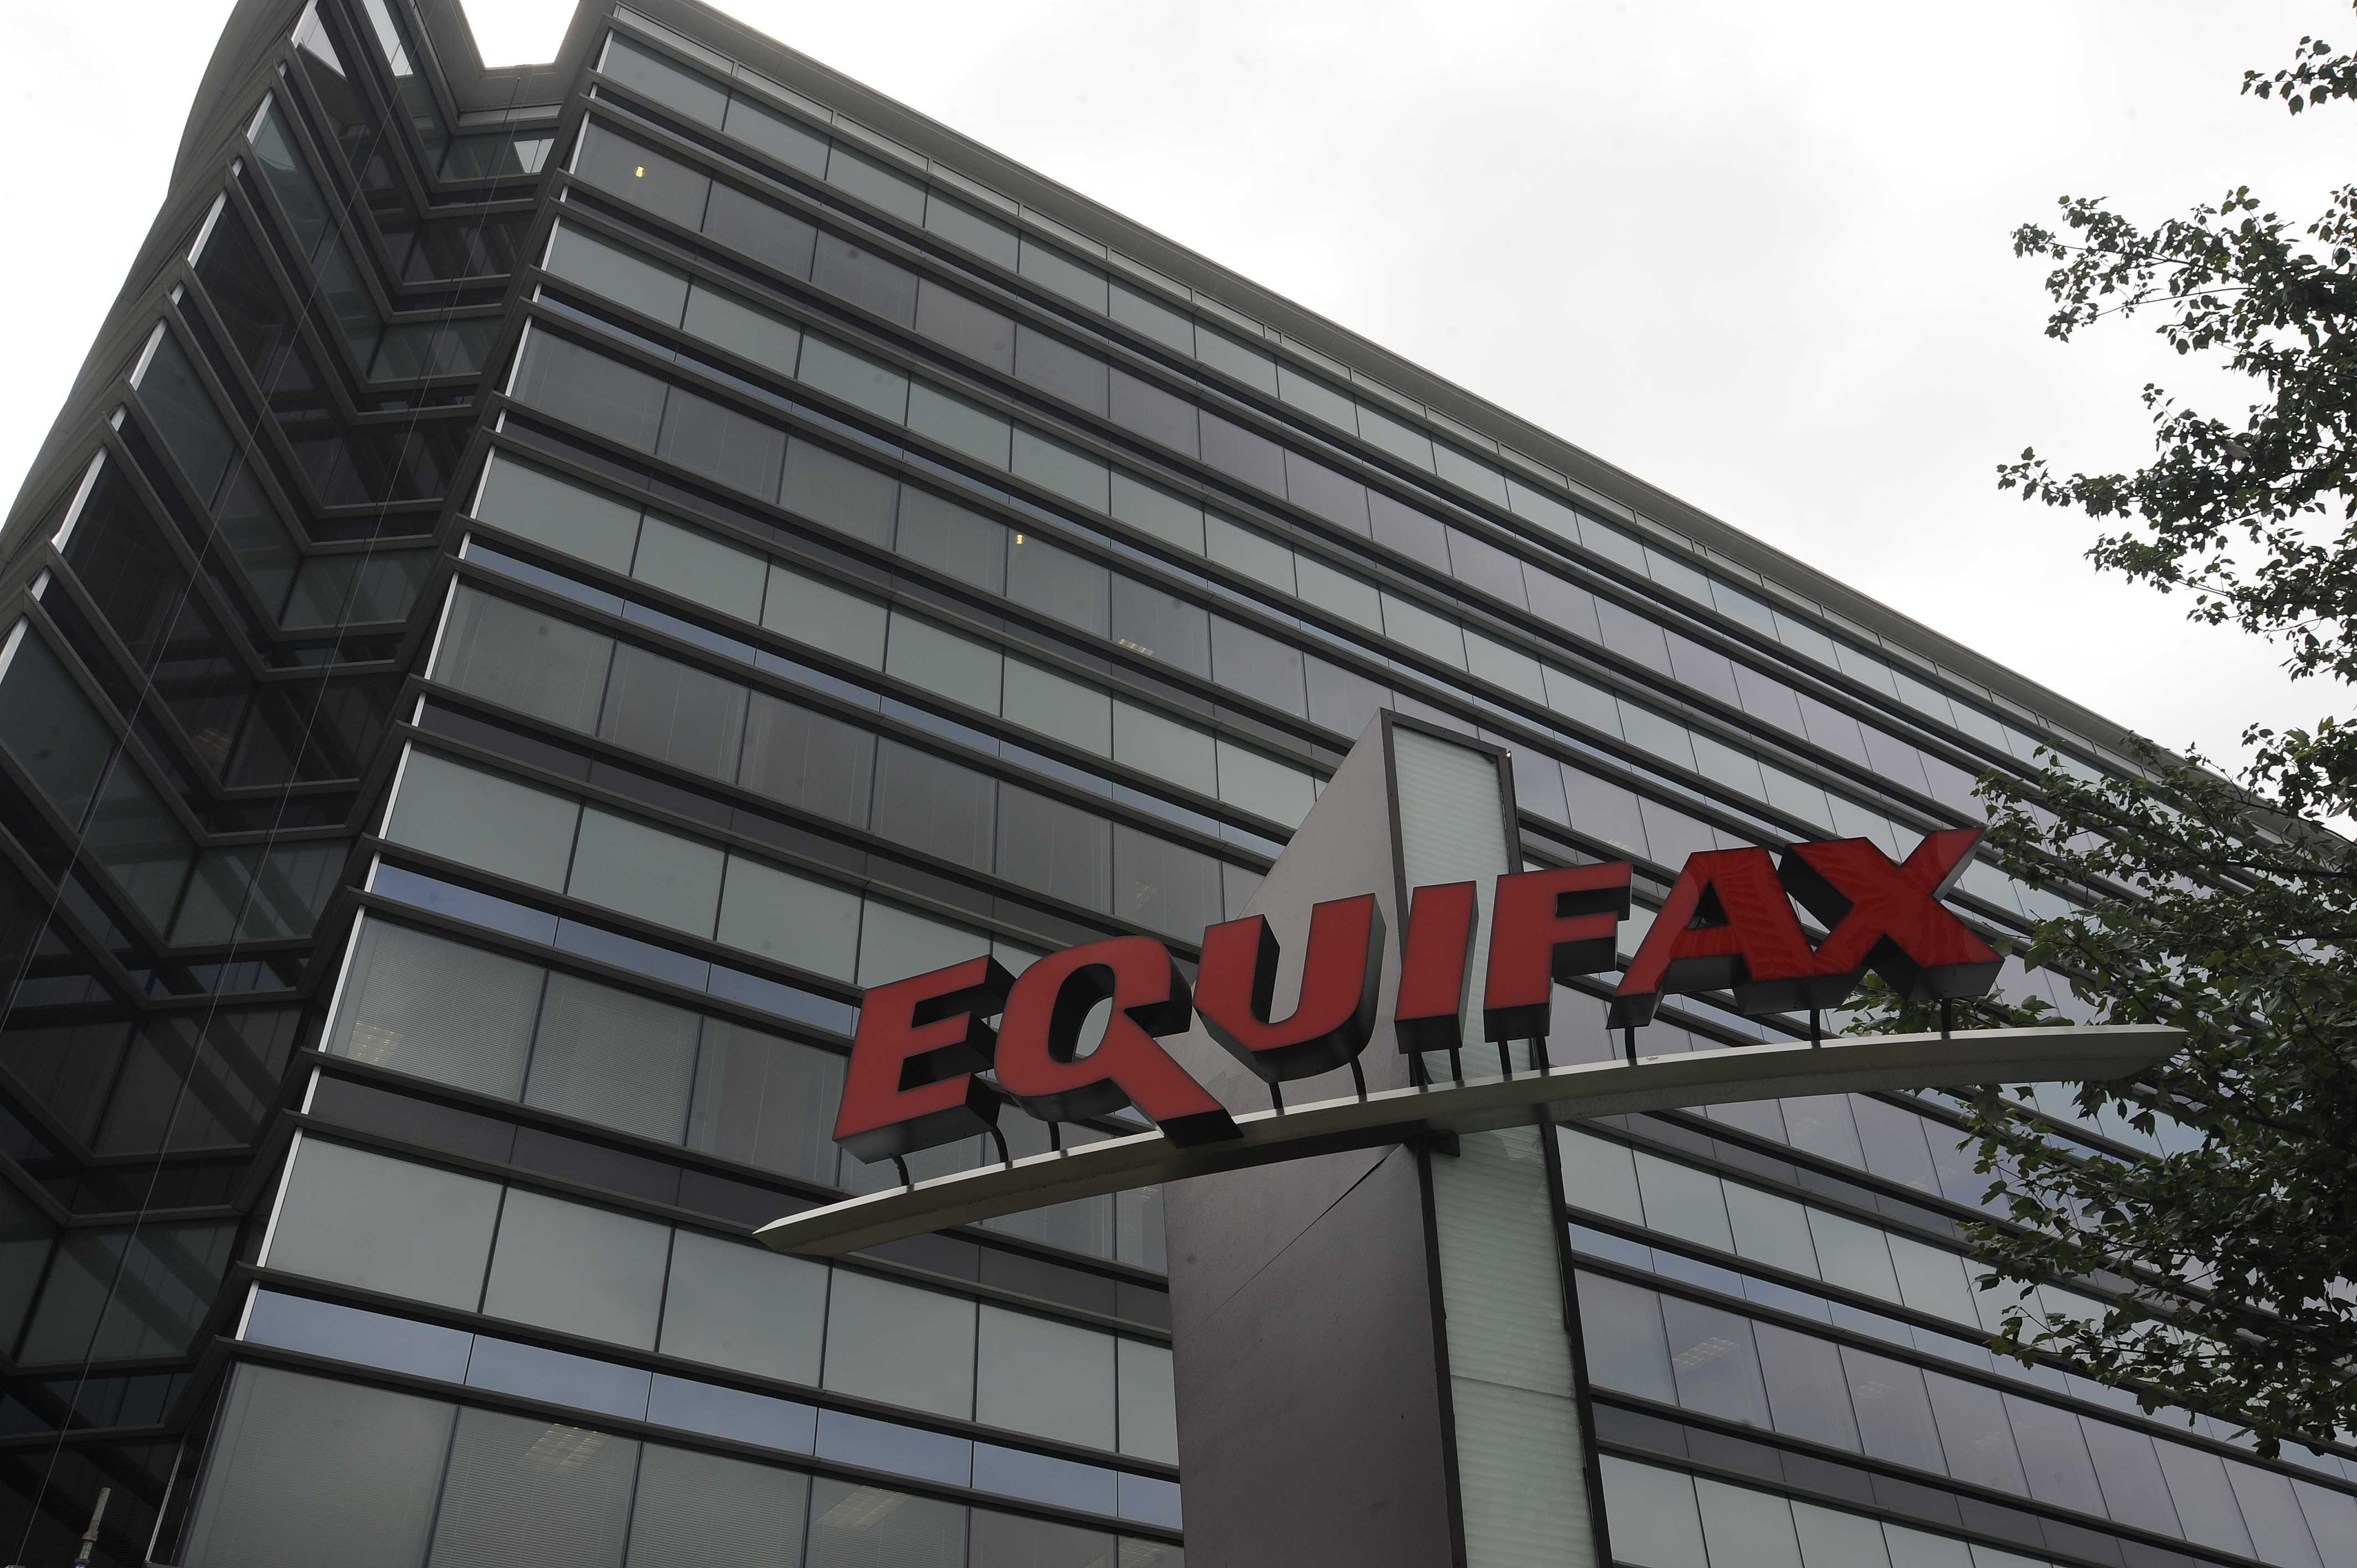 Equifax stock tumbles 14% after credit score hack""